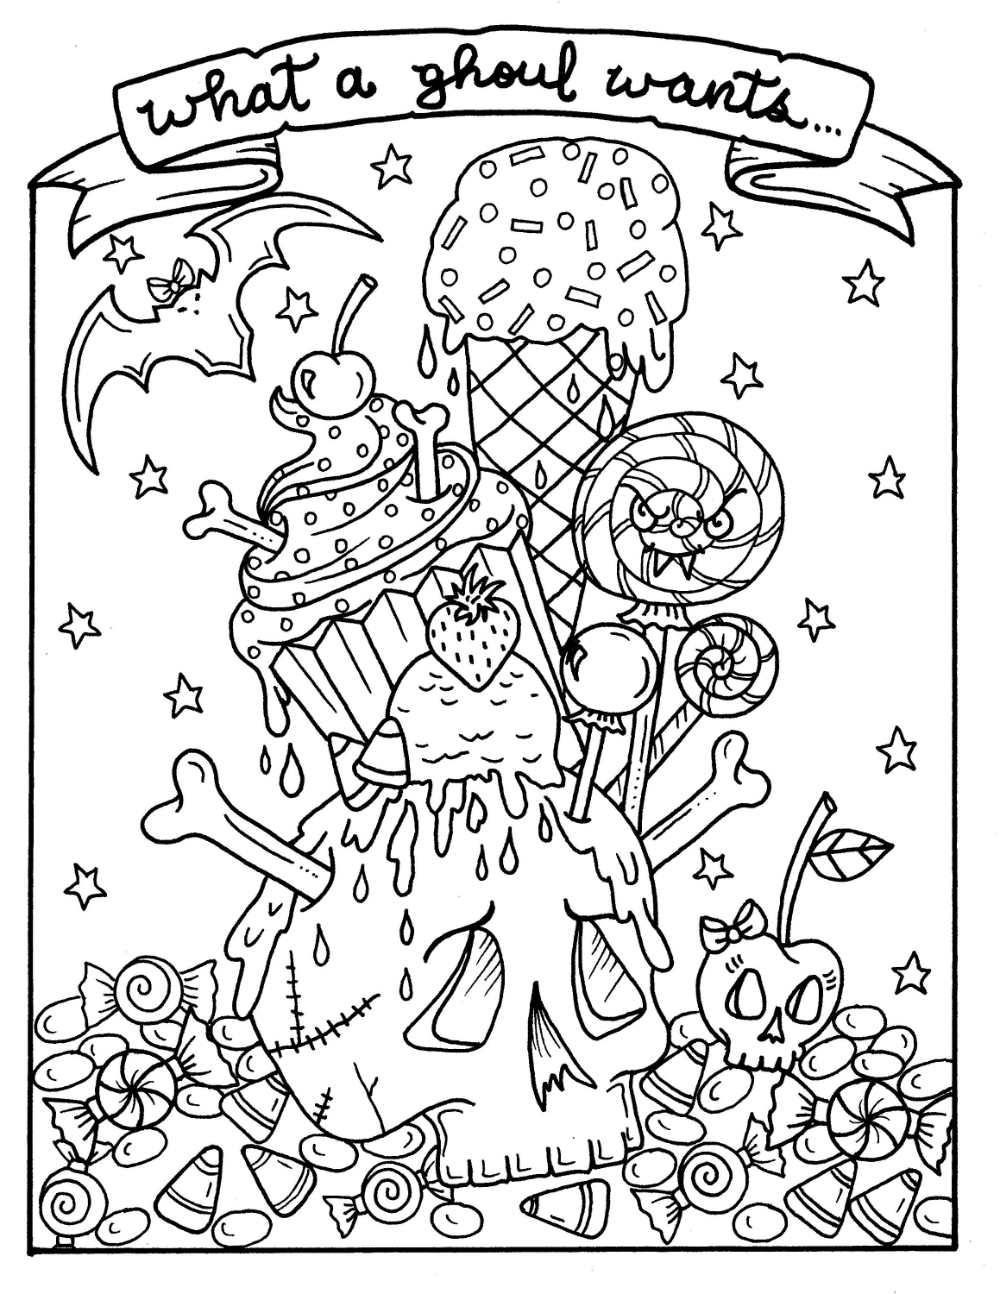 Halloween Sweets and Pinups Digital Download Coloring Book, cupcakes, candy, sassy pinups, adult coloring fun